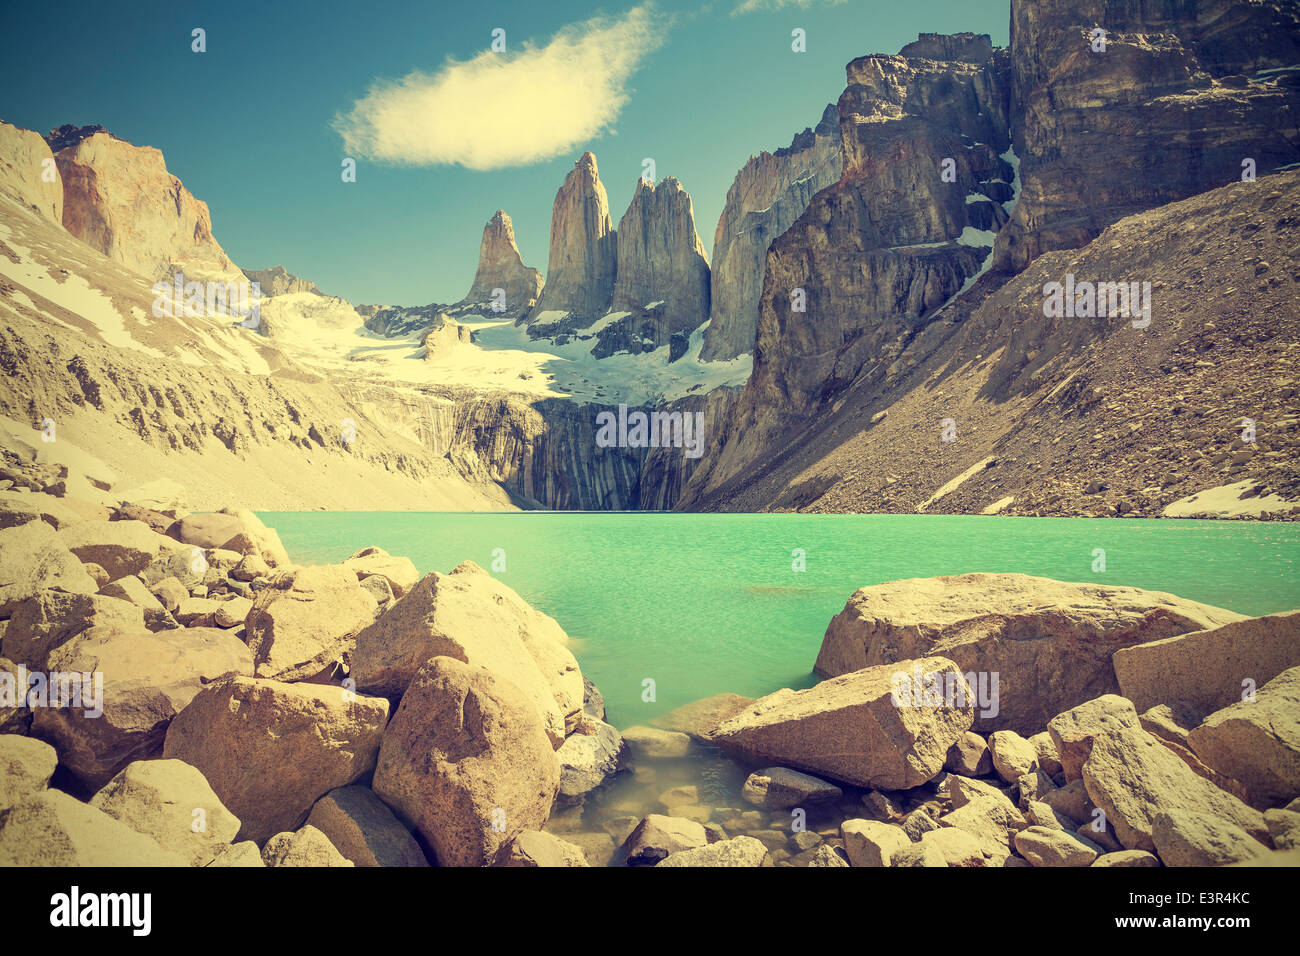 Torres del Paine mountains and lake in Chile, Patagonia, vintage retro filter. - Stock Image